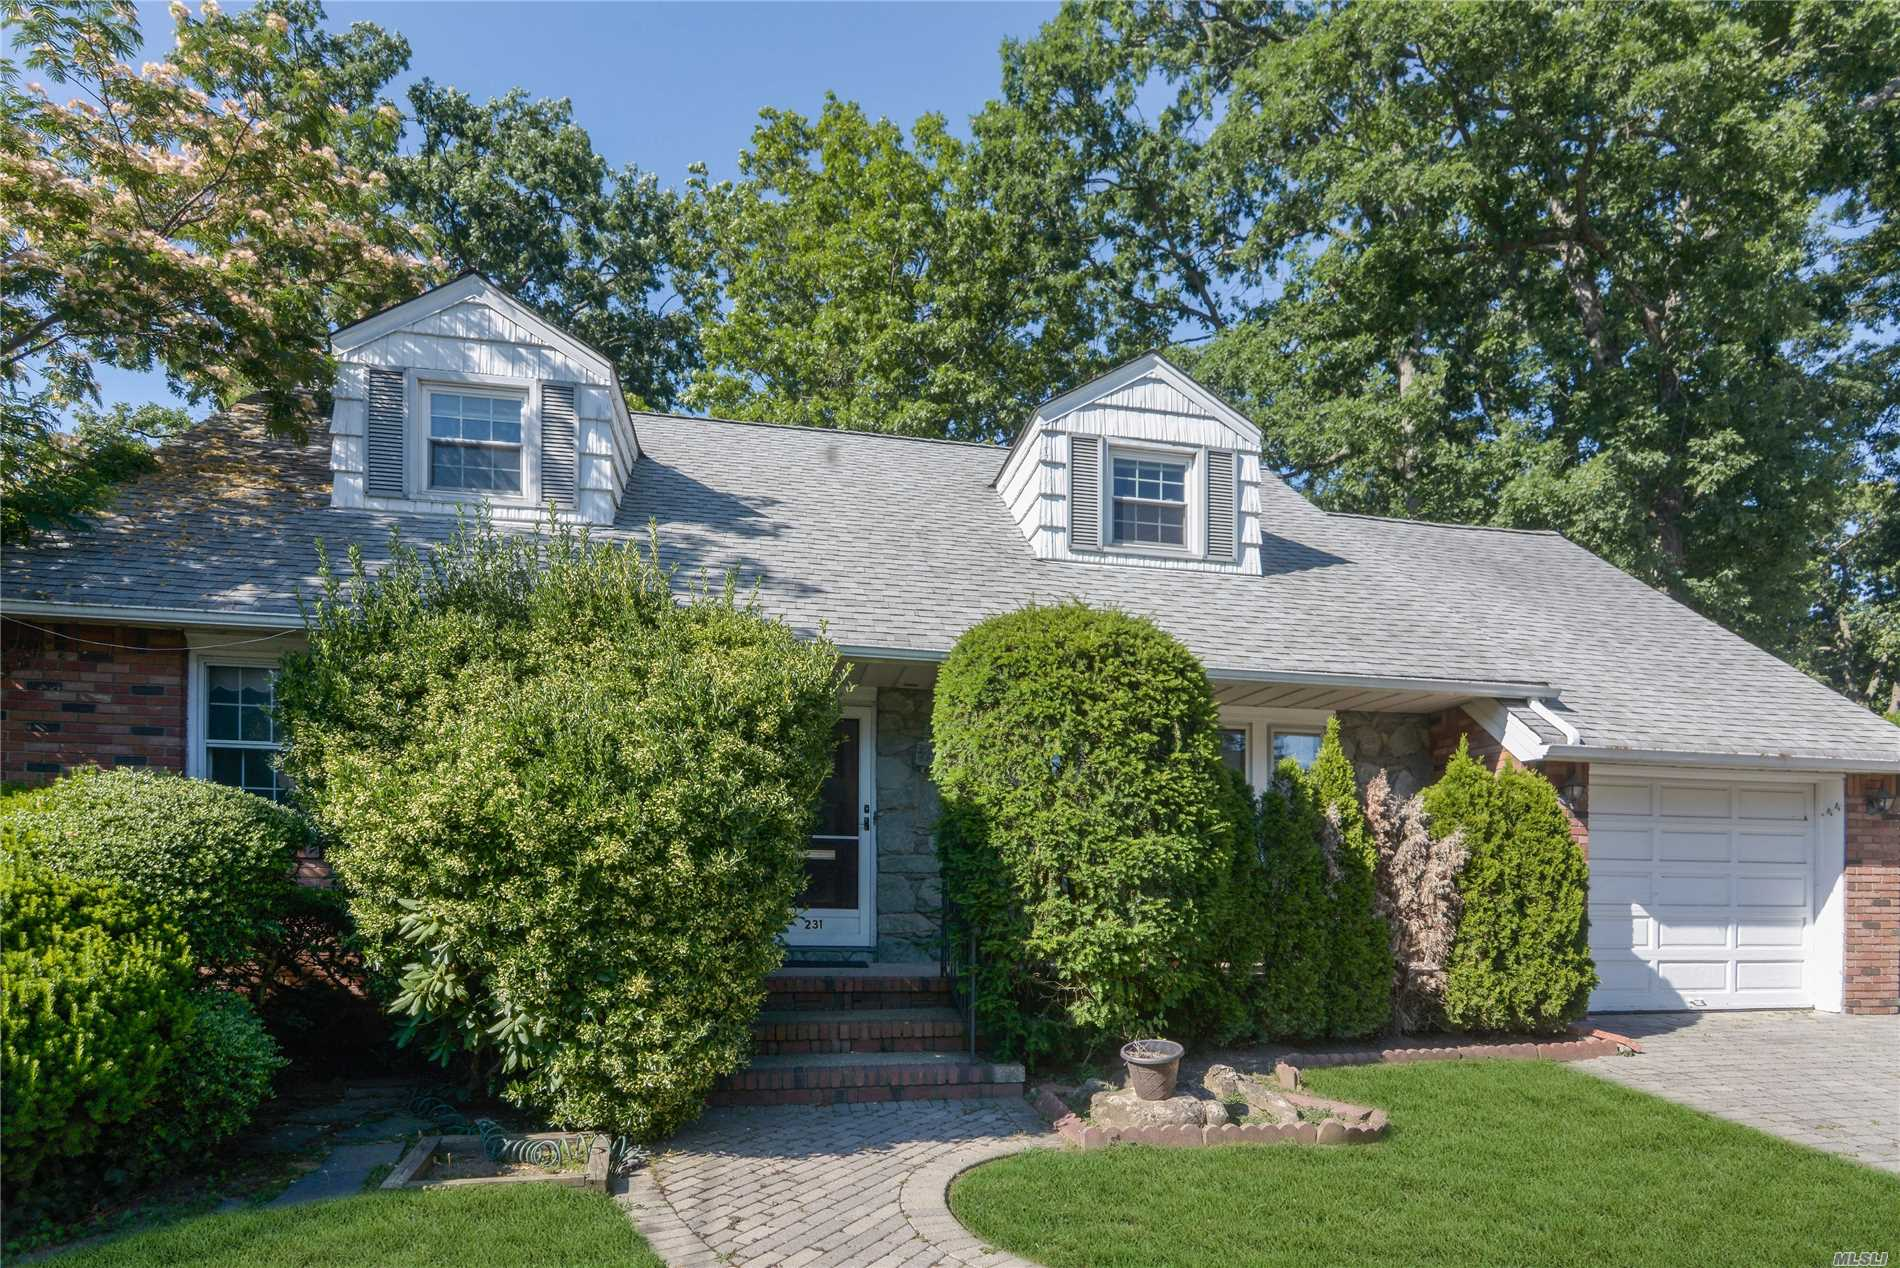 Photo of home for sale at 231 East Euclid St, Valley Stream NY